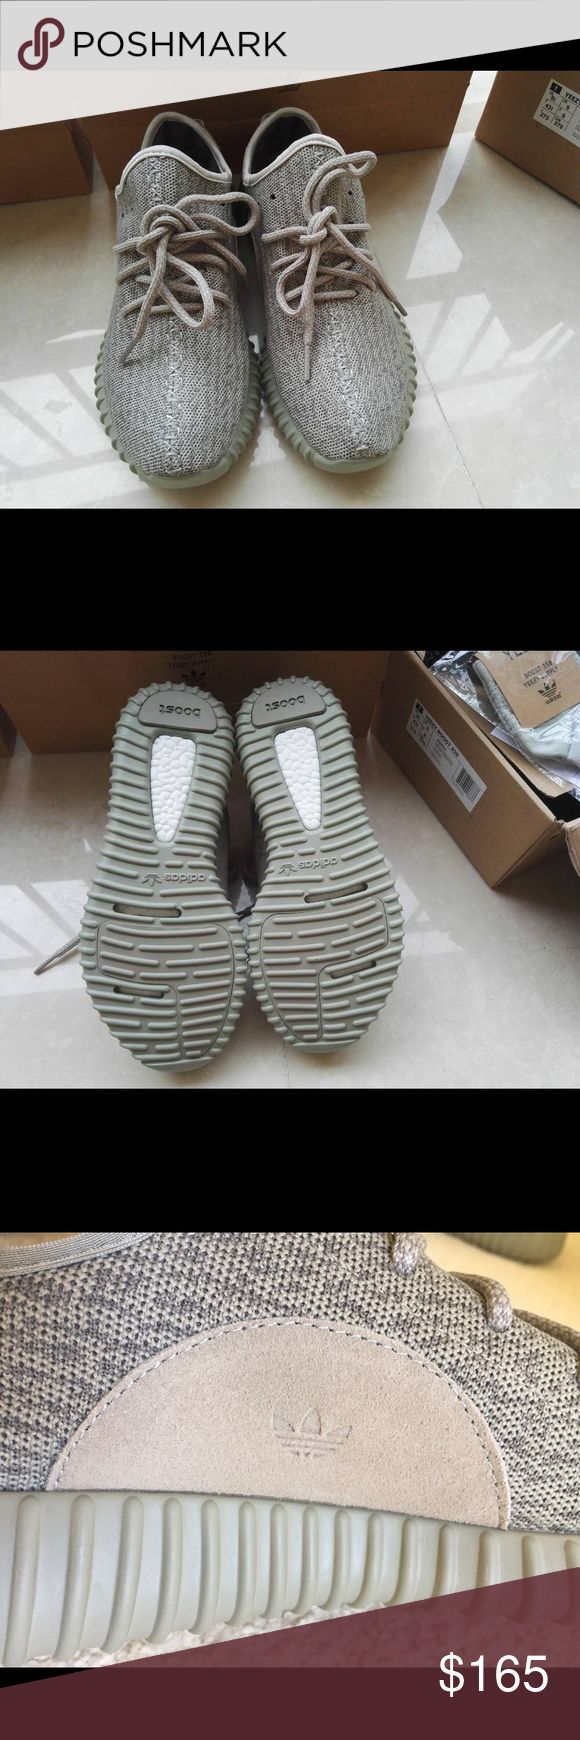 a10d6577f adidas yeezy boost 350 moon rock release china replica yeezy boost ...